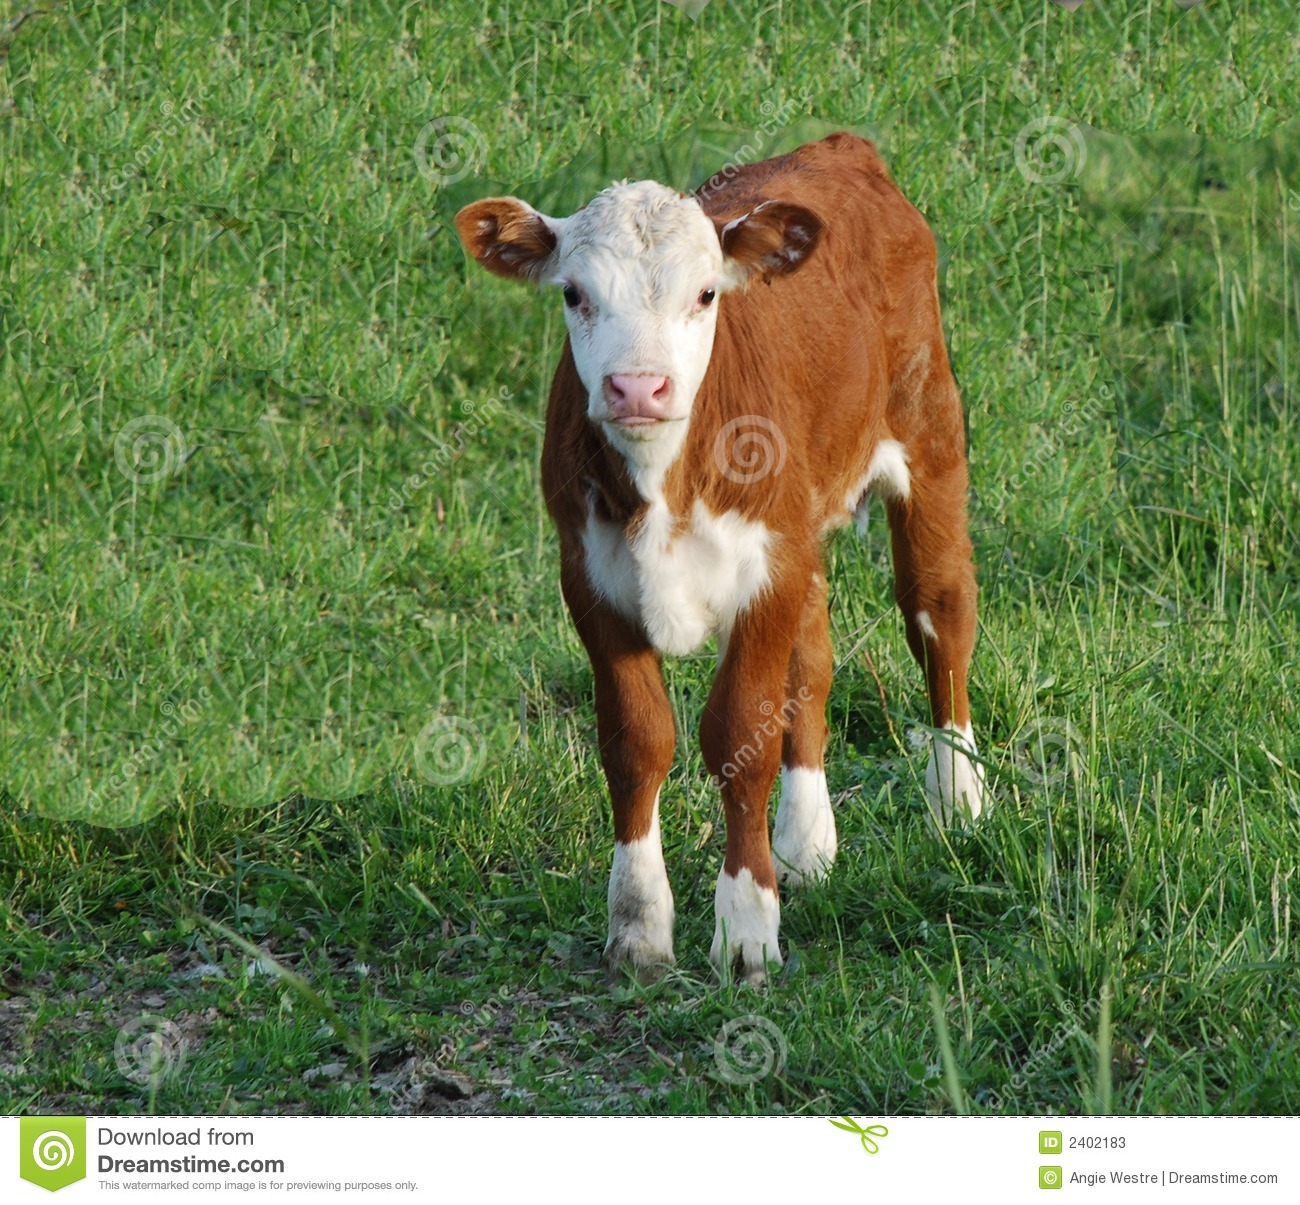 Baby Cow Stock Photos - Image: 2402183